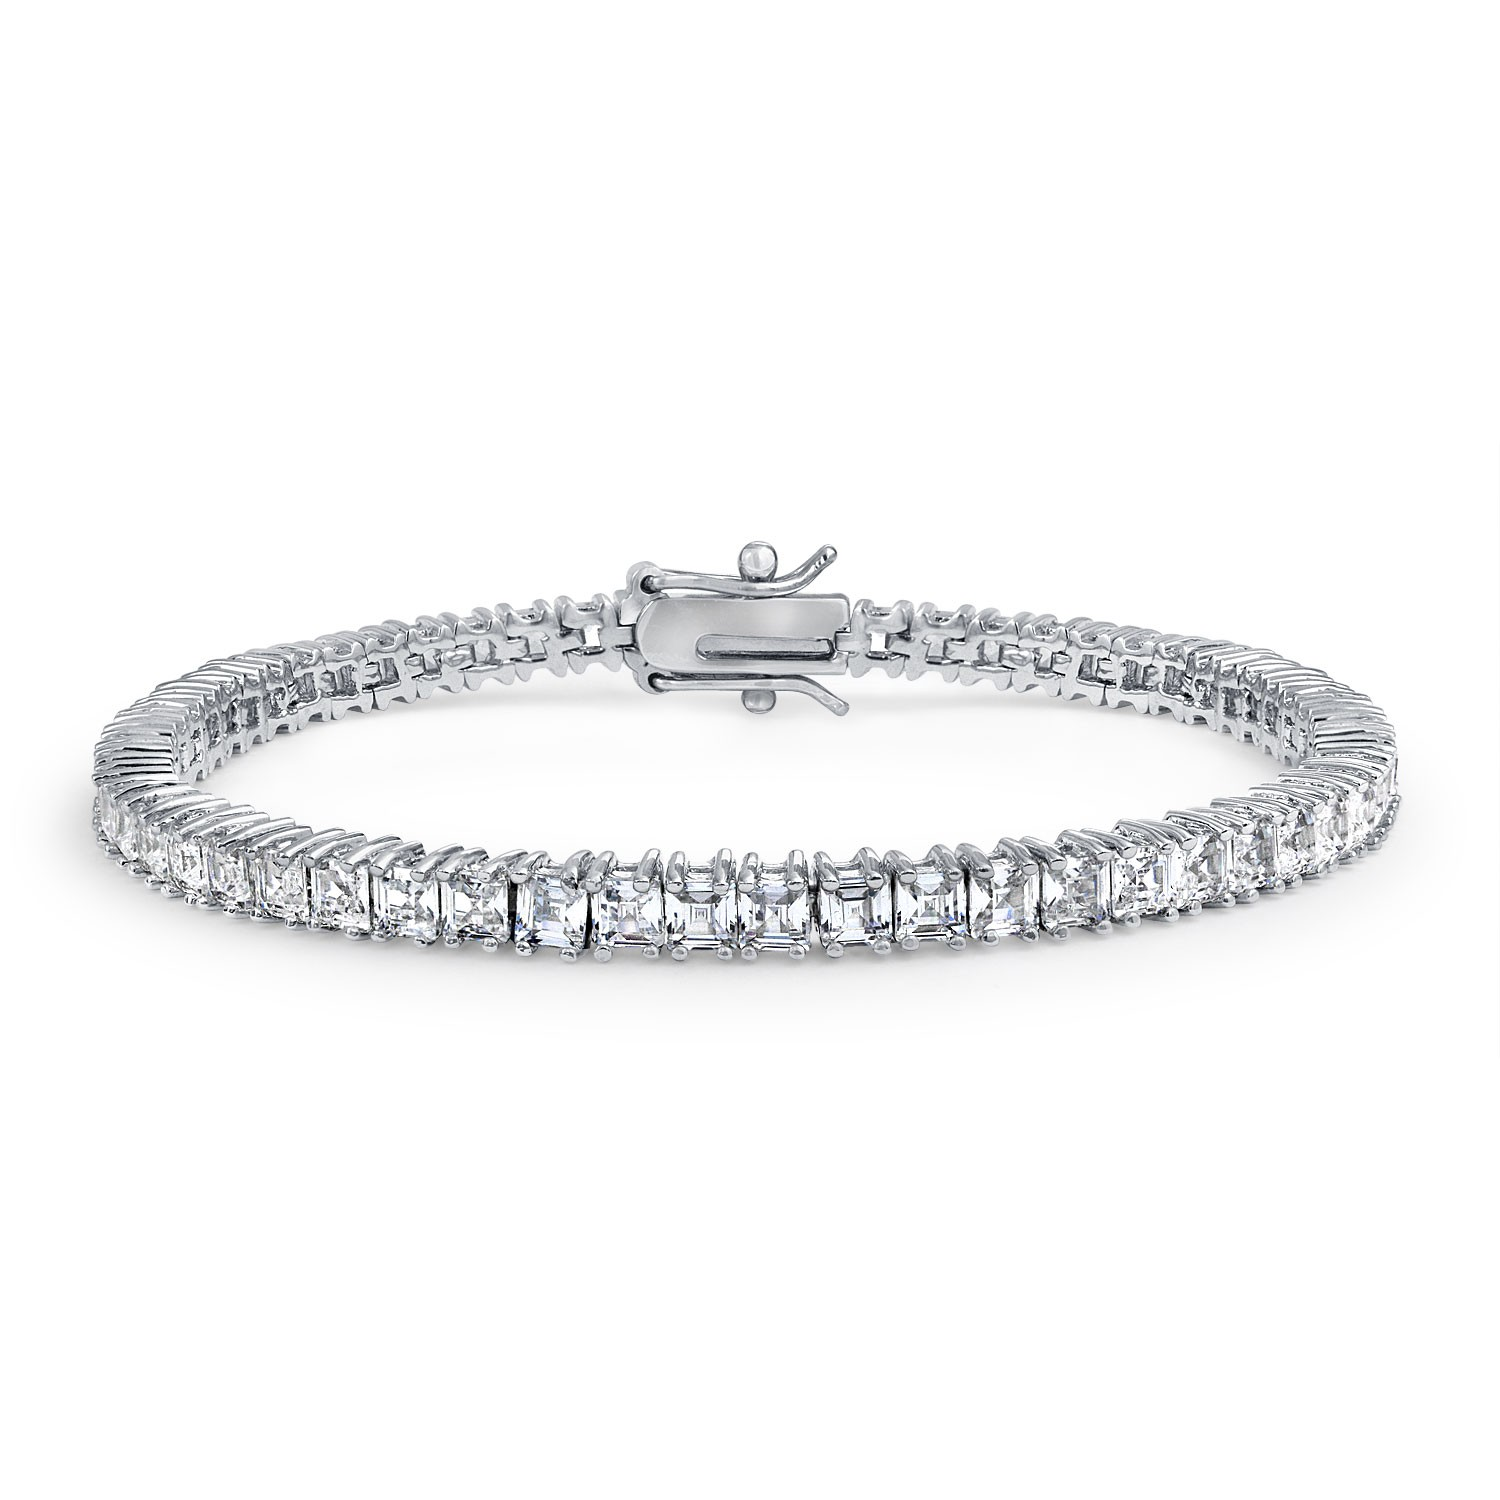 Tennis Bracelet: Don't Go By The Name